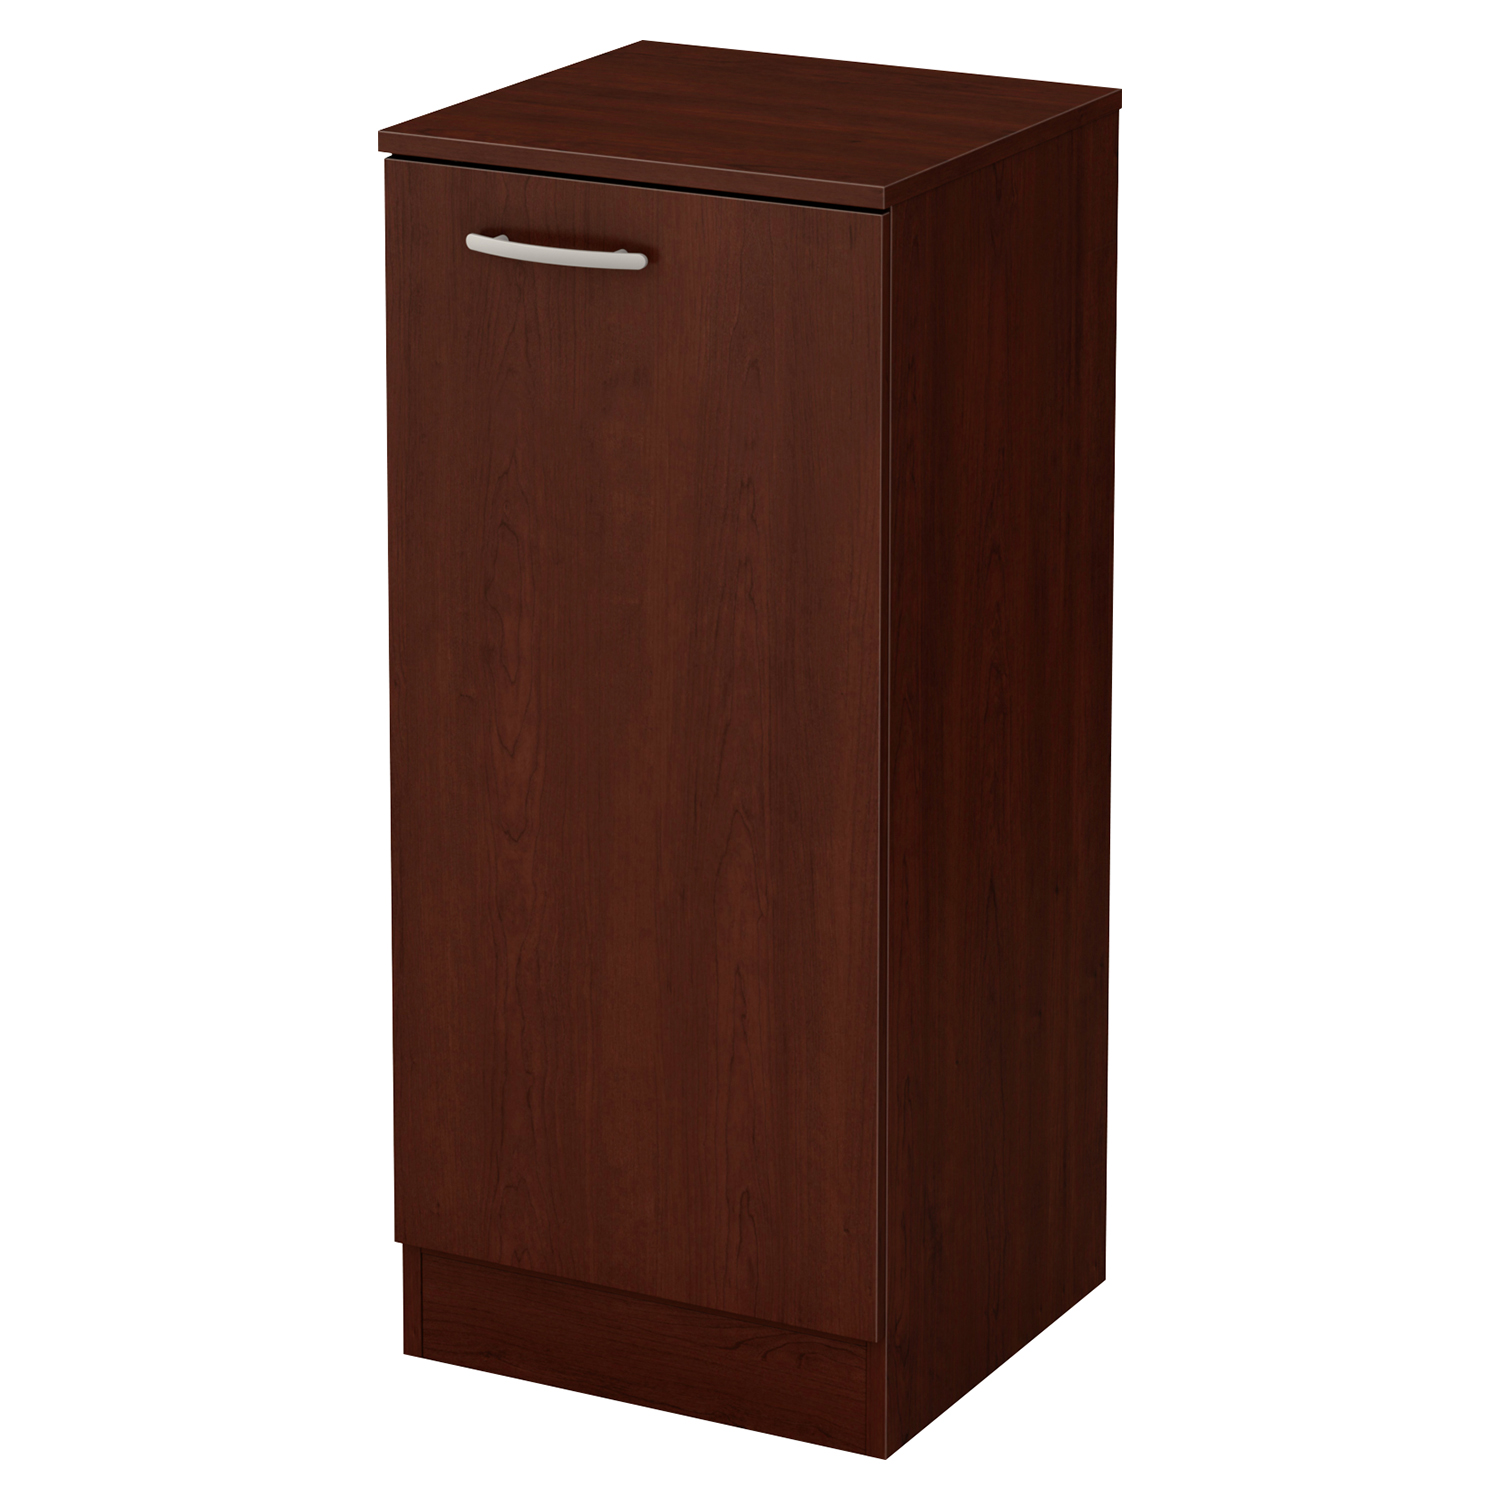 Axess Narrow Storage Cabinet - Royal Cherry - SS-10186